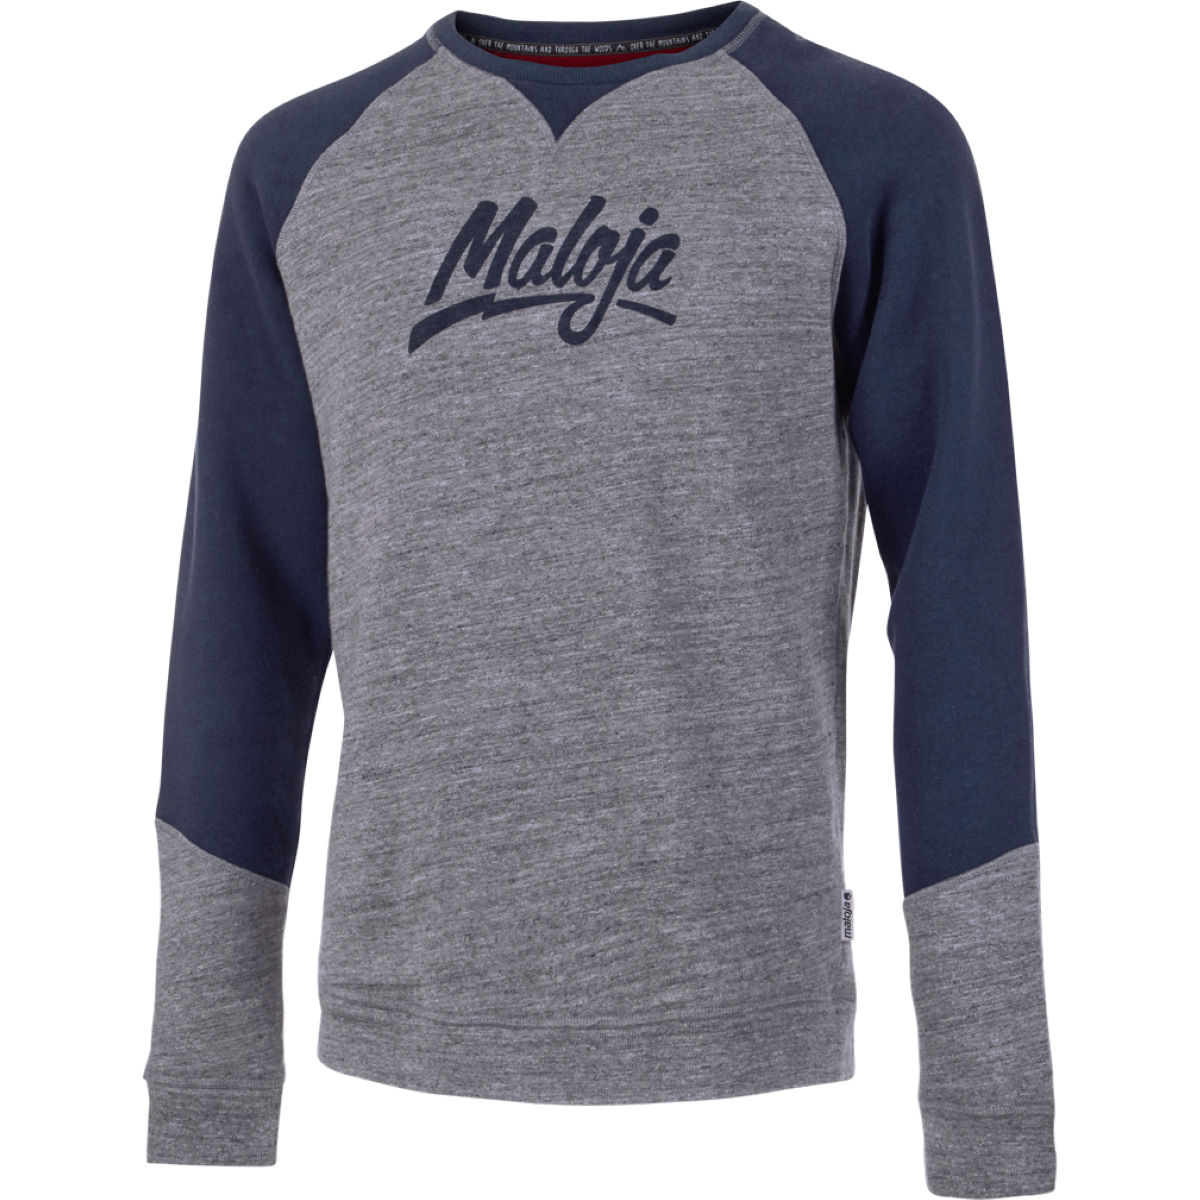 Maloja Mens GardinerM. Sweatshirt   Fleeces & Hoodies